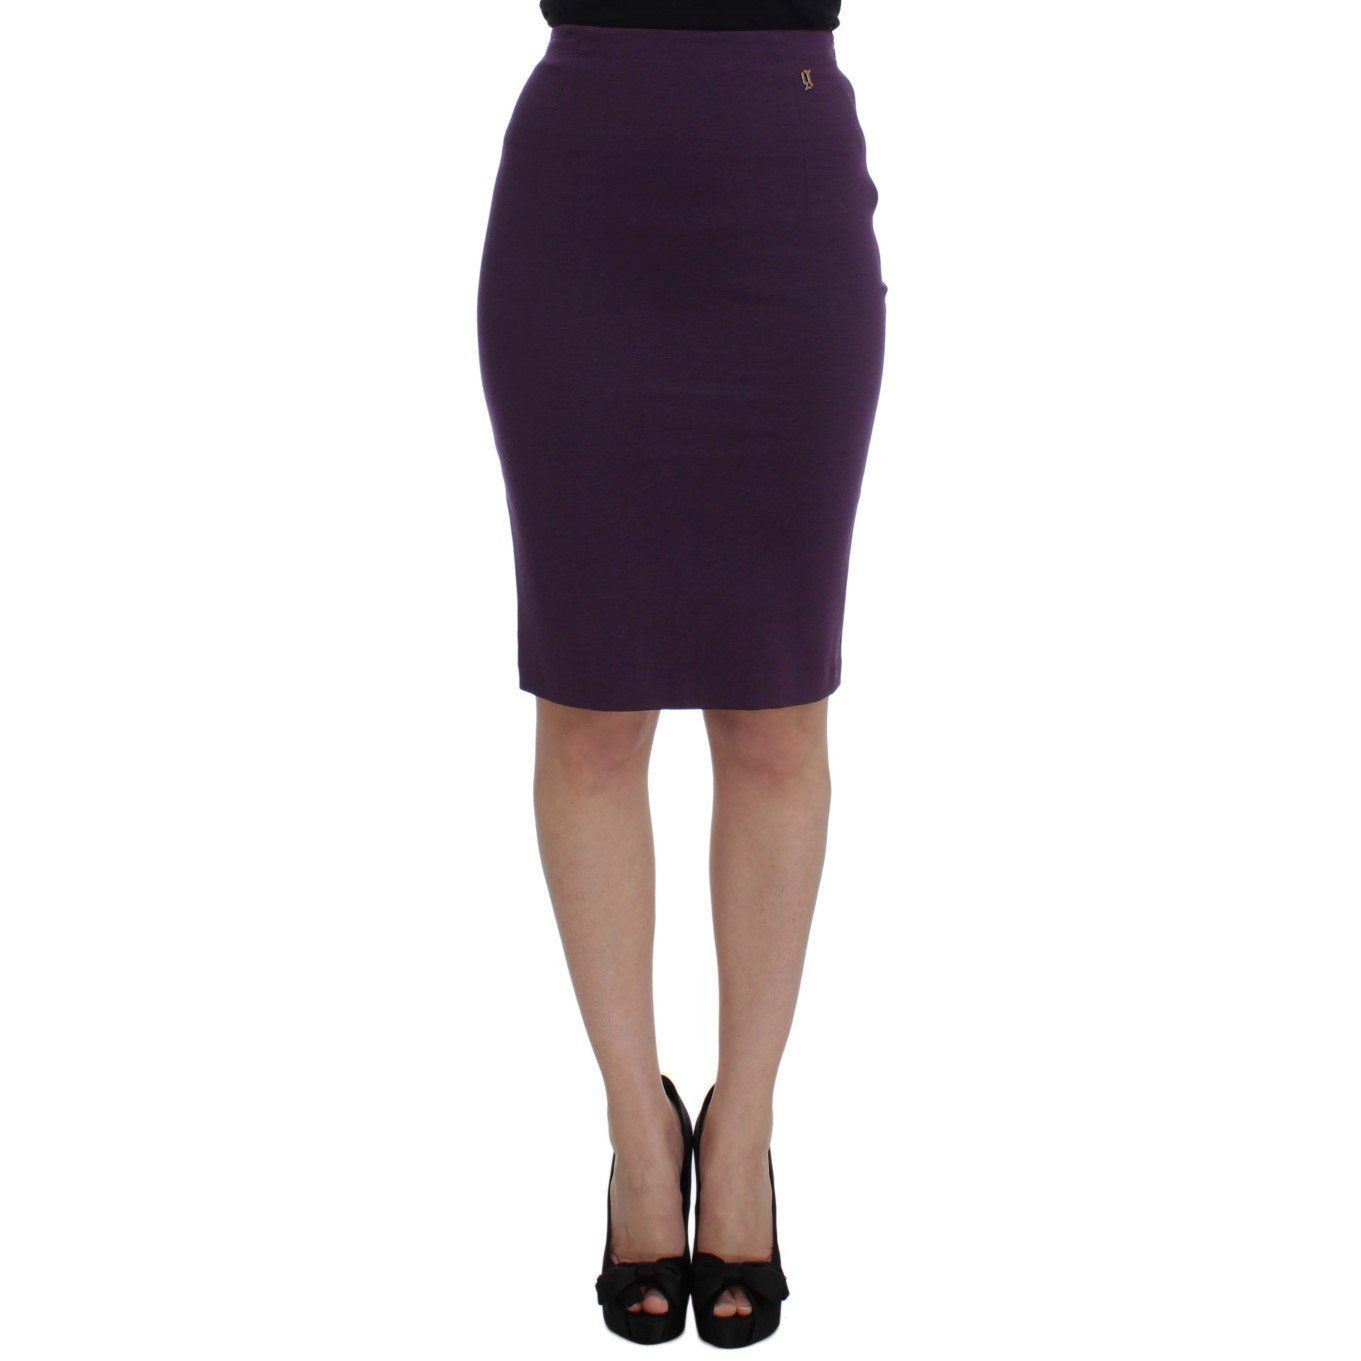 Purple Stretch Pencil Skirt Galliano